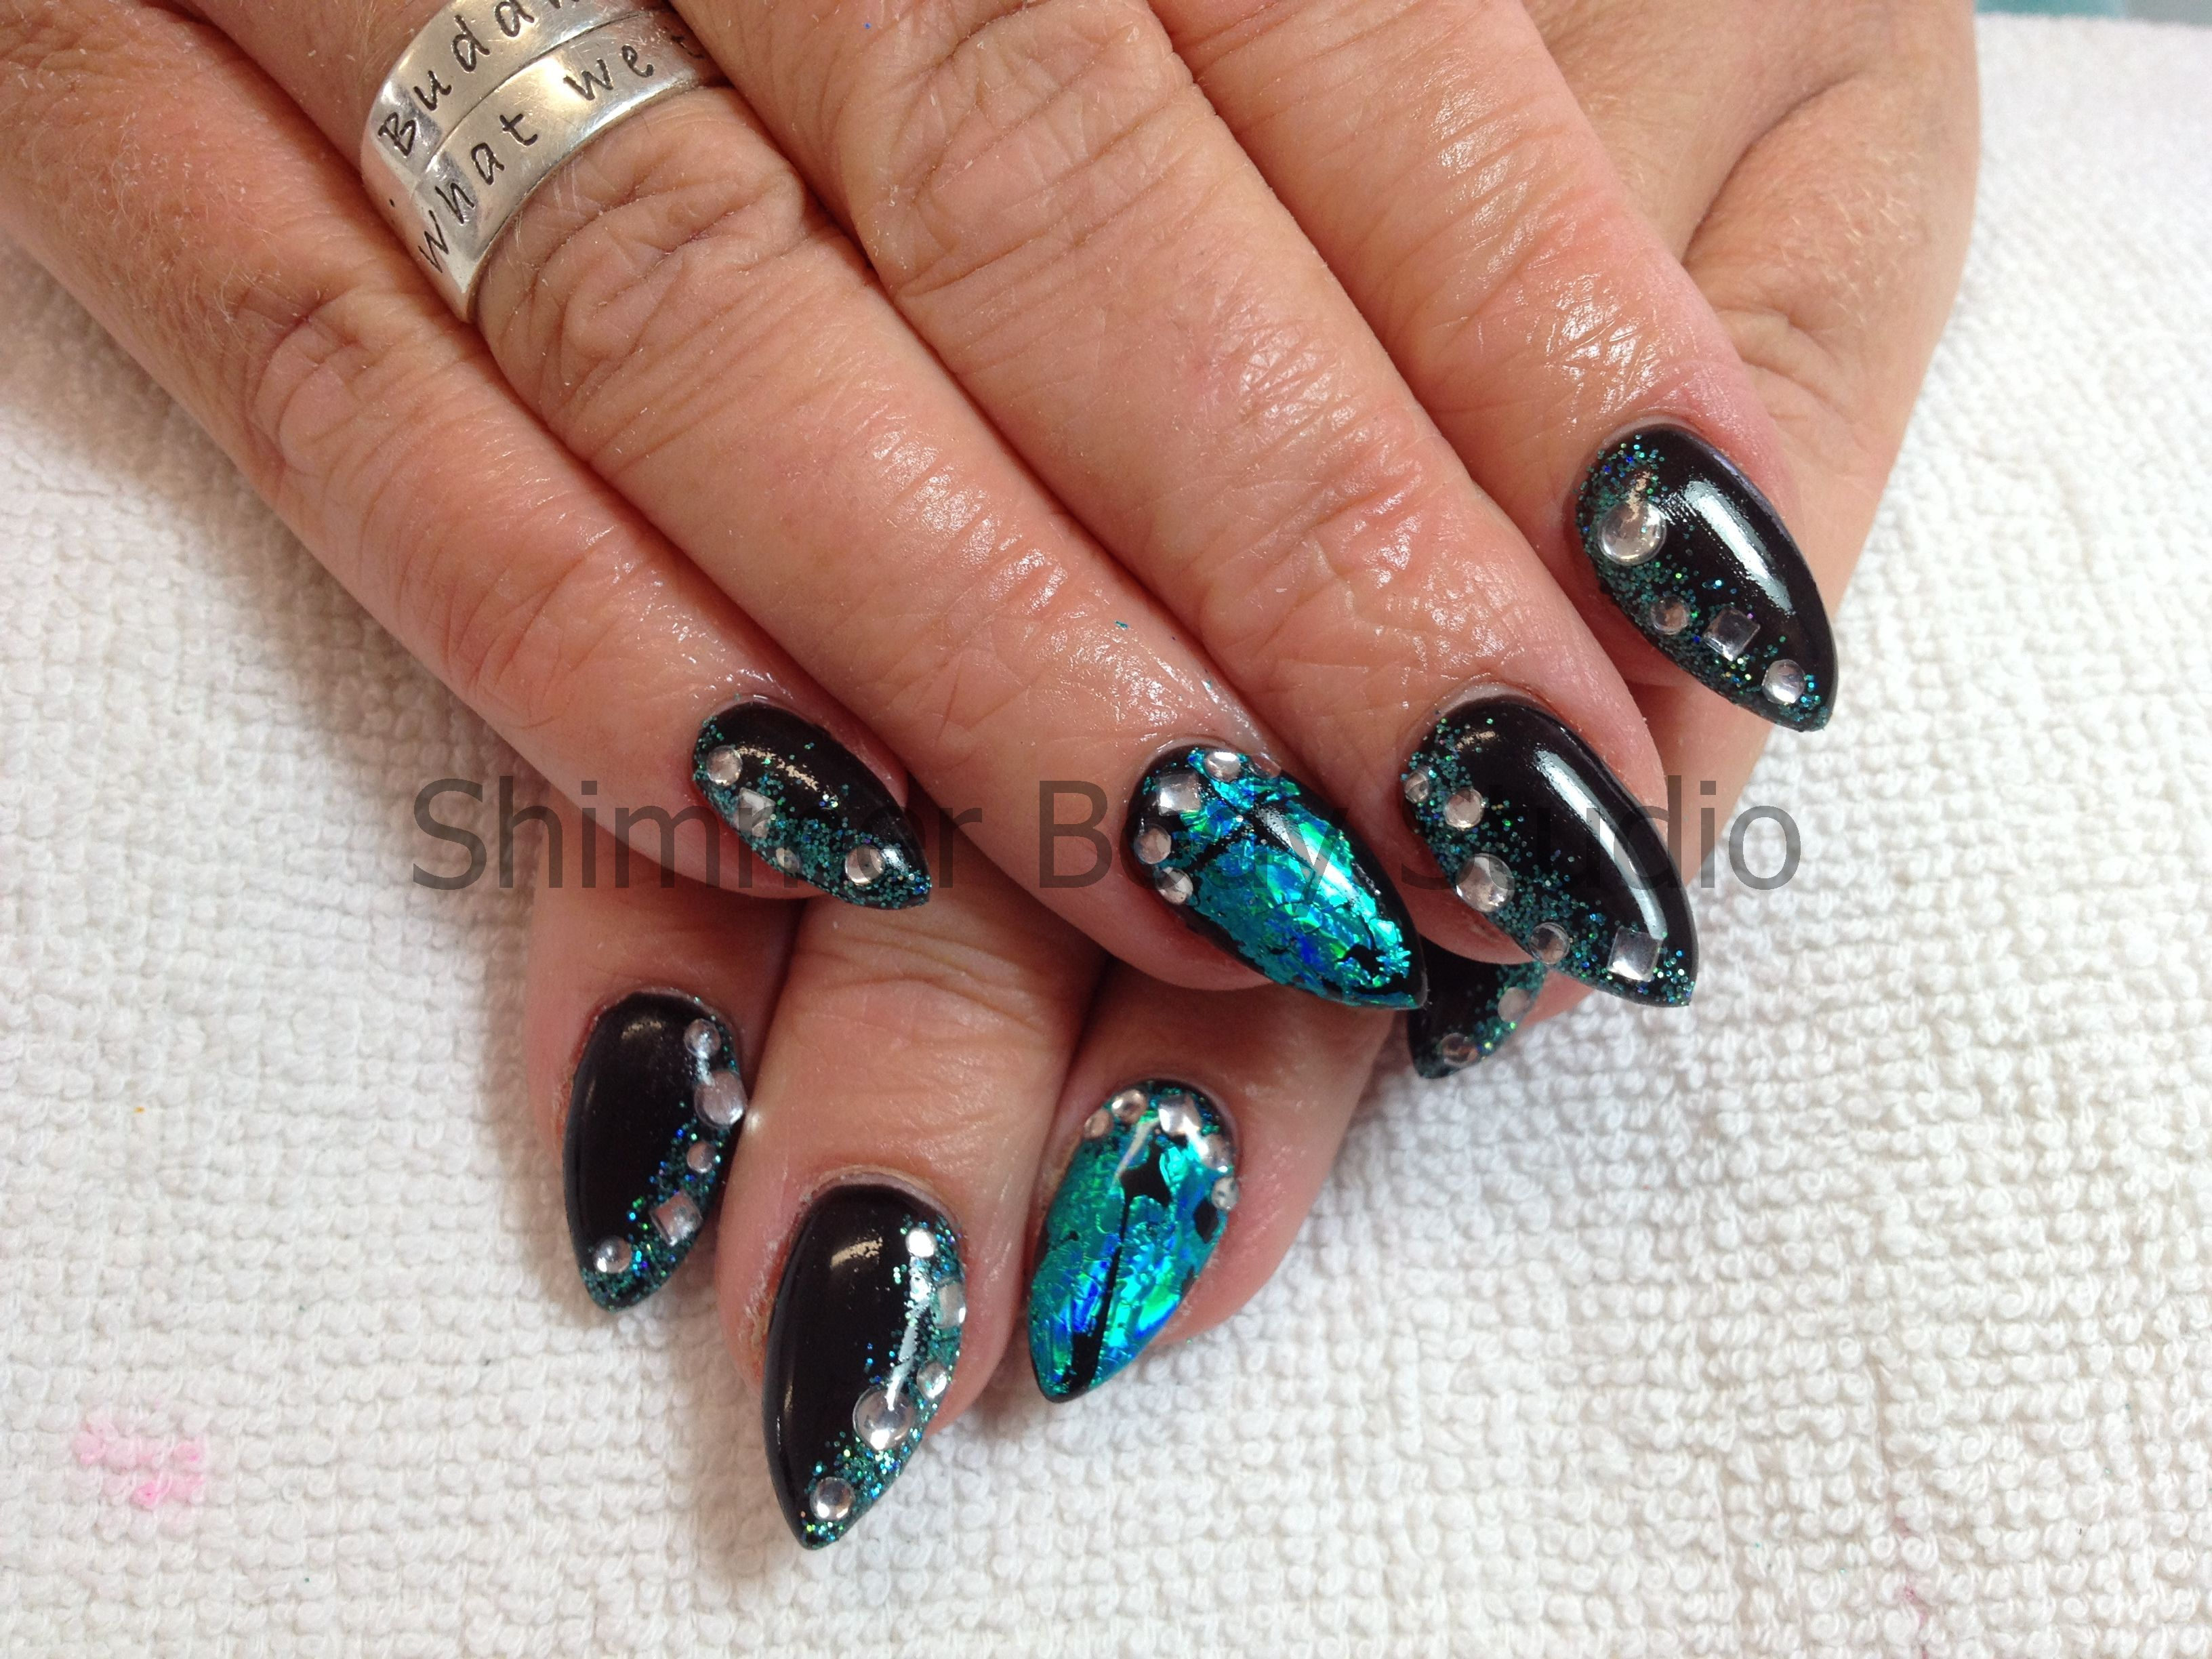 Gel nails, pointed nails, turquoise nail art, foil, glitter ...